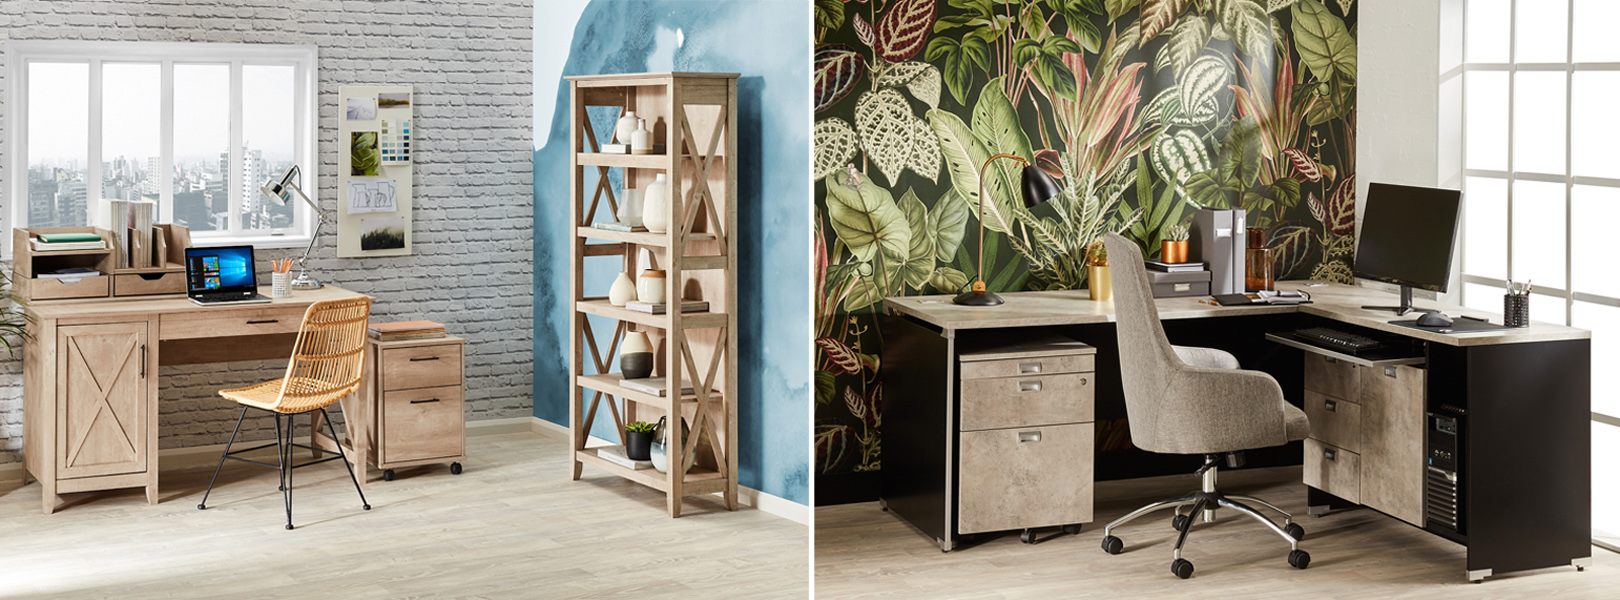 Furniture for your Home Office Renovation